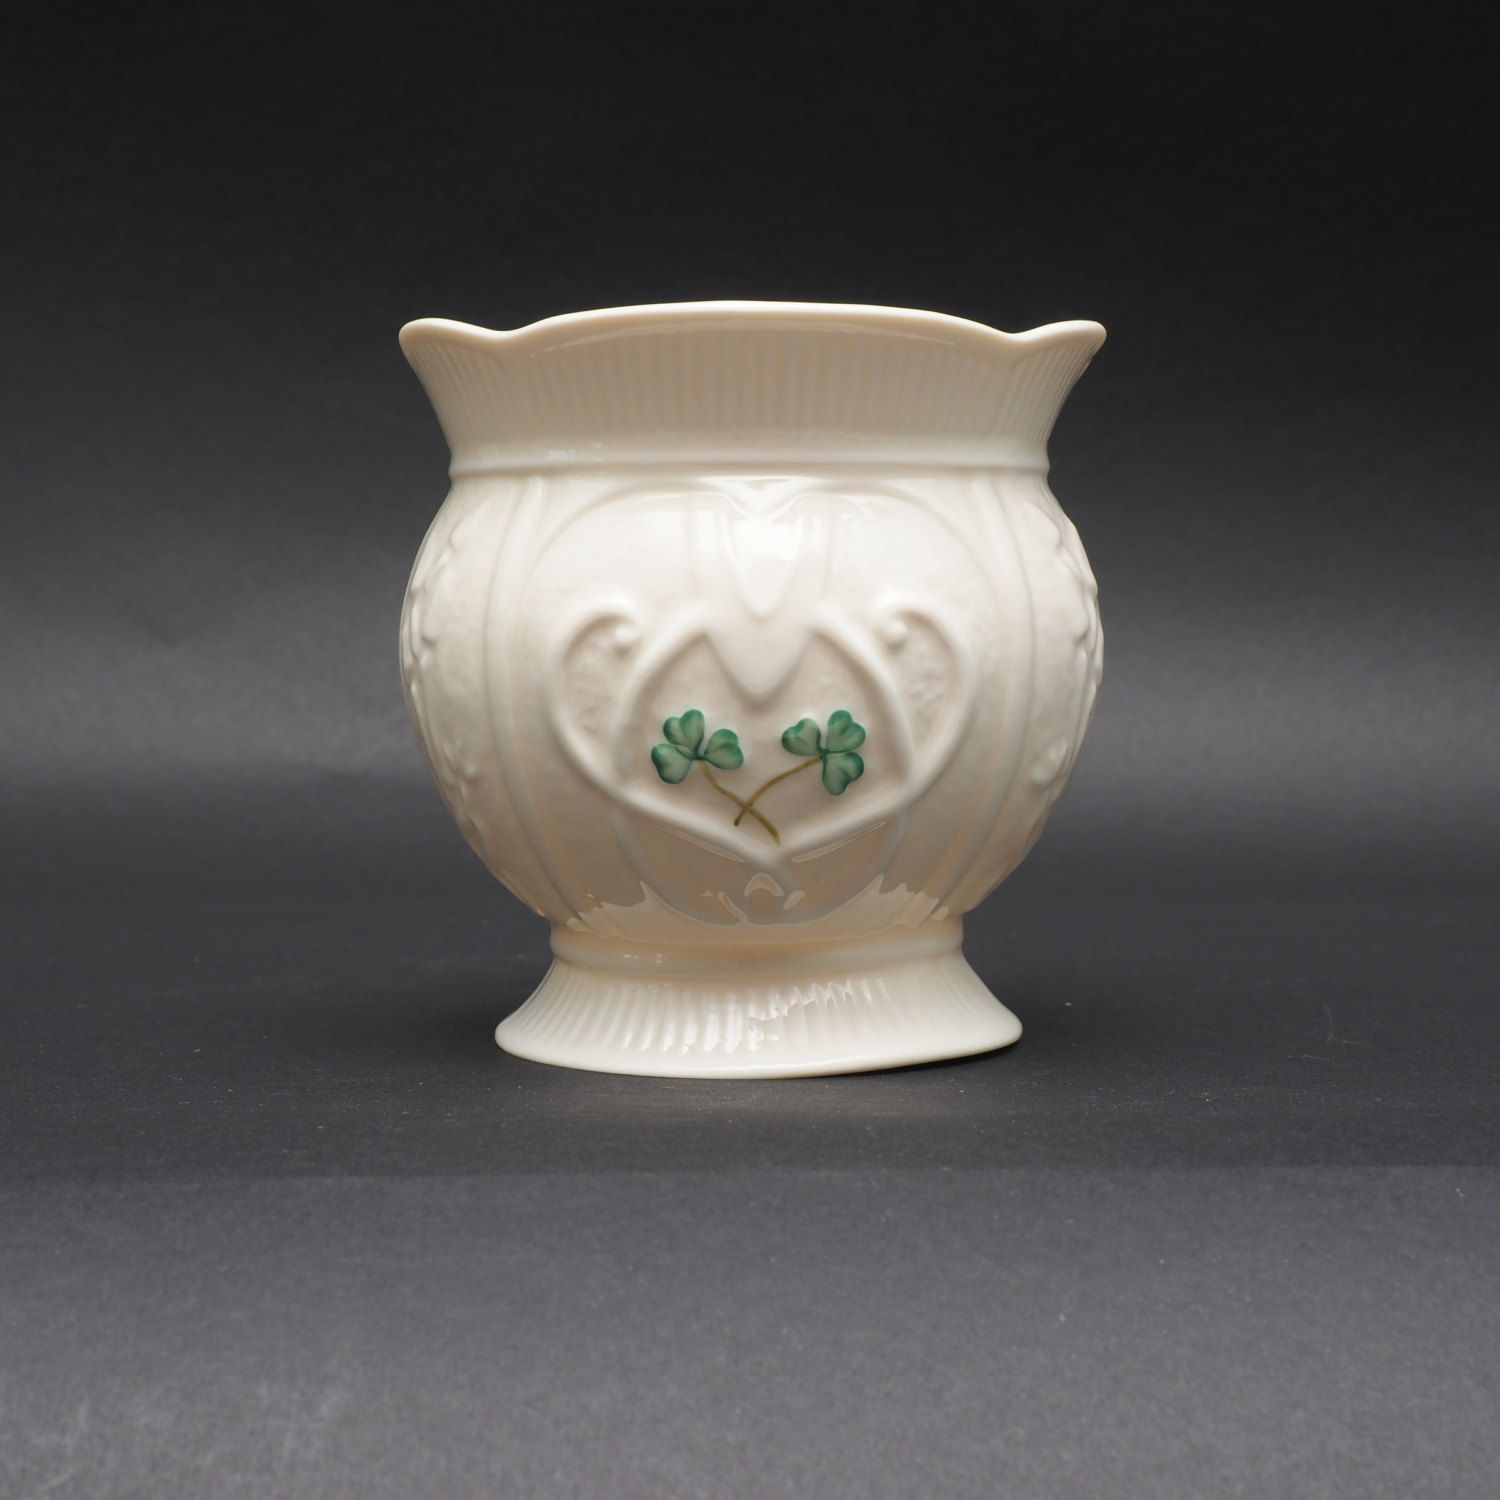 Belleek China Event Piece, Fine White Porcelain China Green Clovers, Titled Love Heart Signed Naomi Sloan, Supply for Flower Vase Home Decor by LiliesLegacies on Etsy